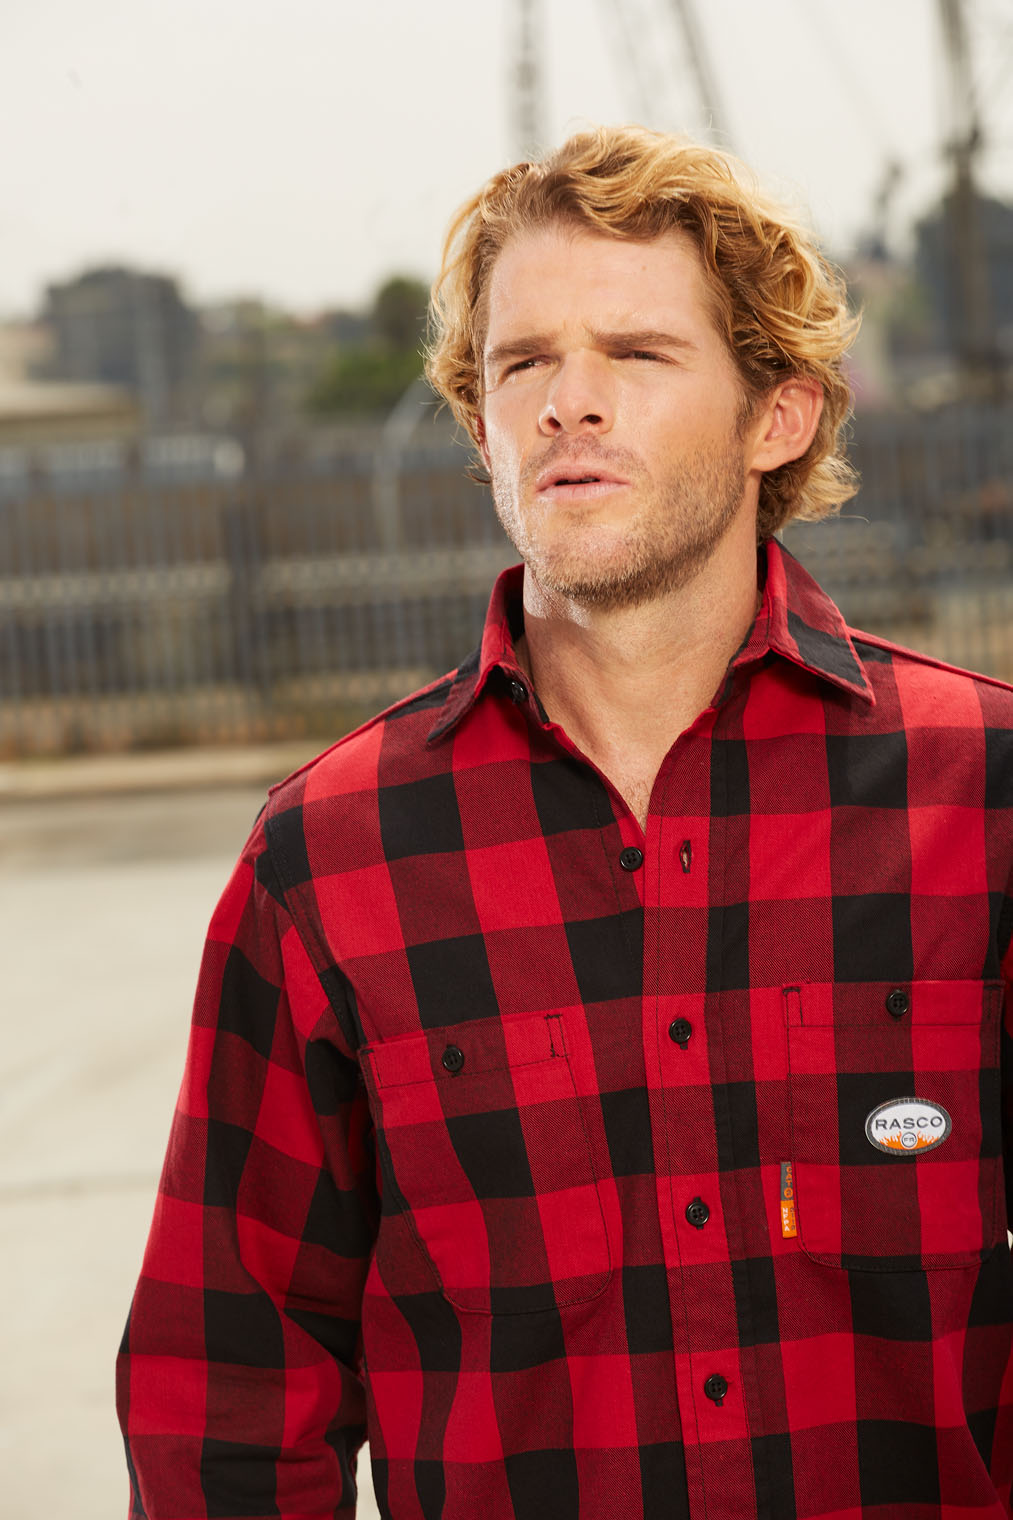 worker in red plaid shirt on construction site in Los Angeles